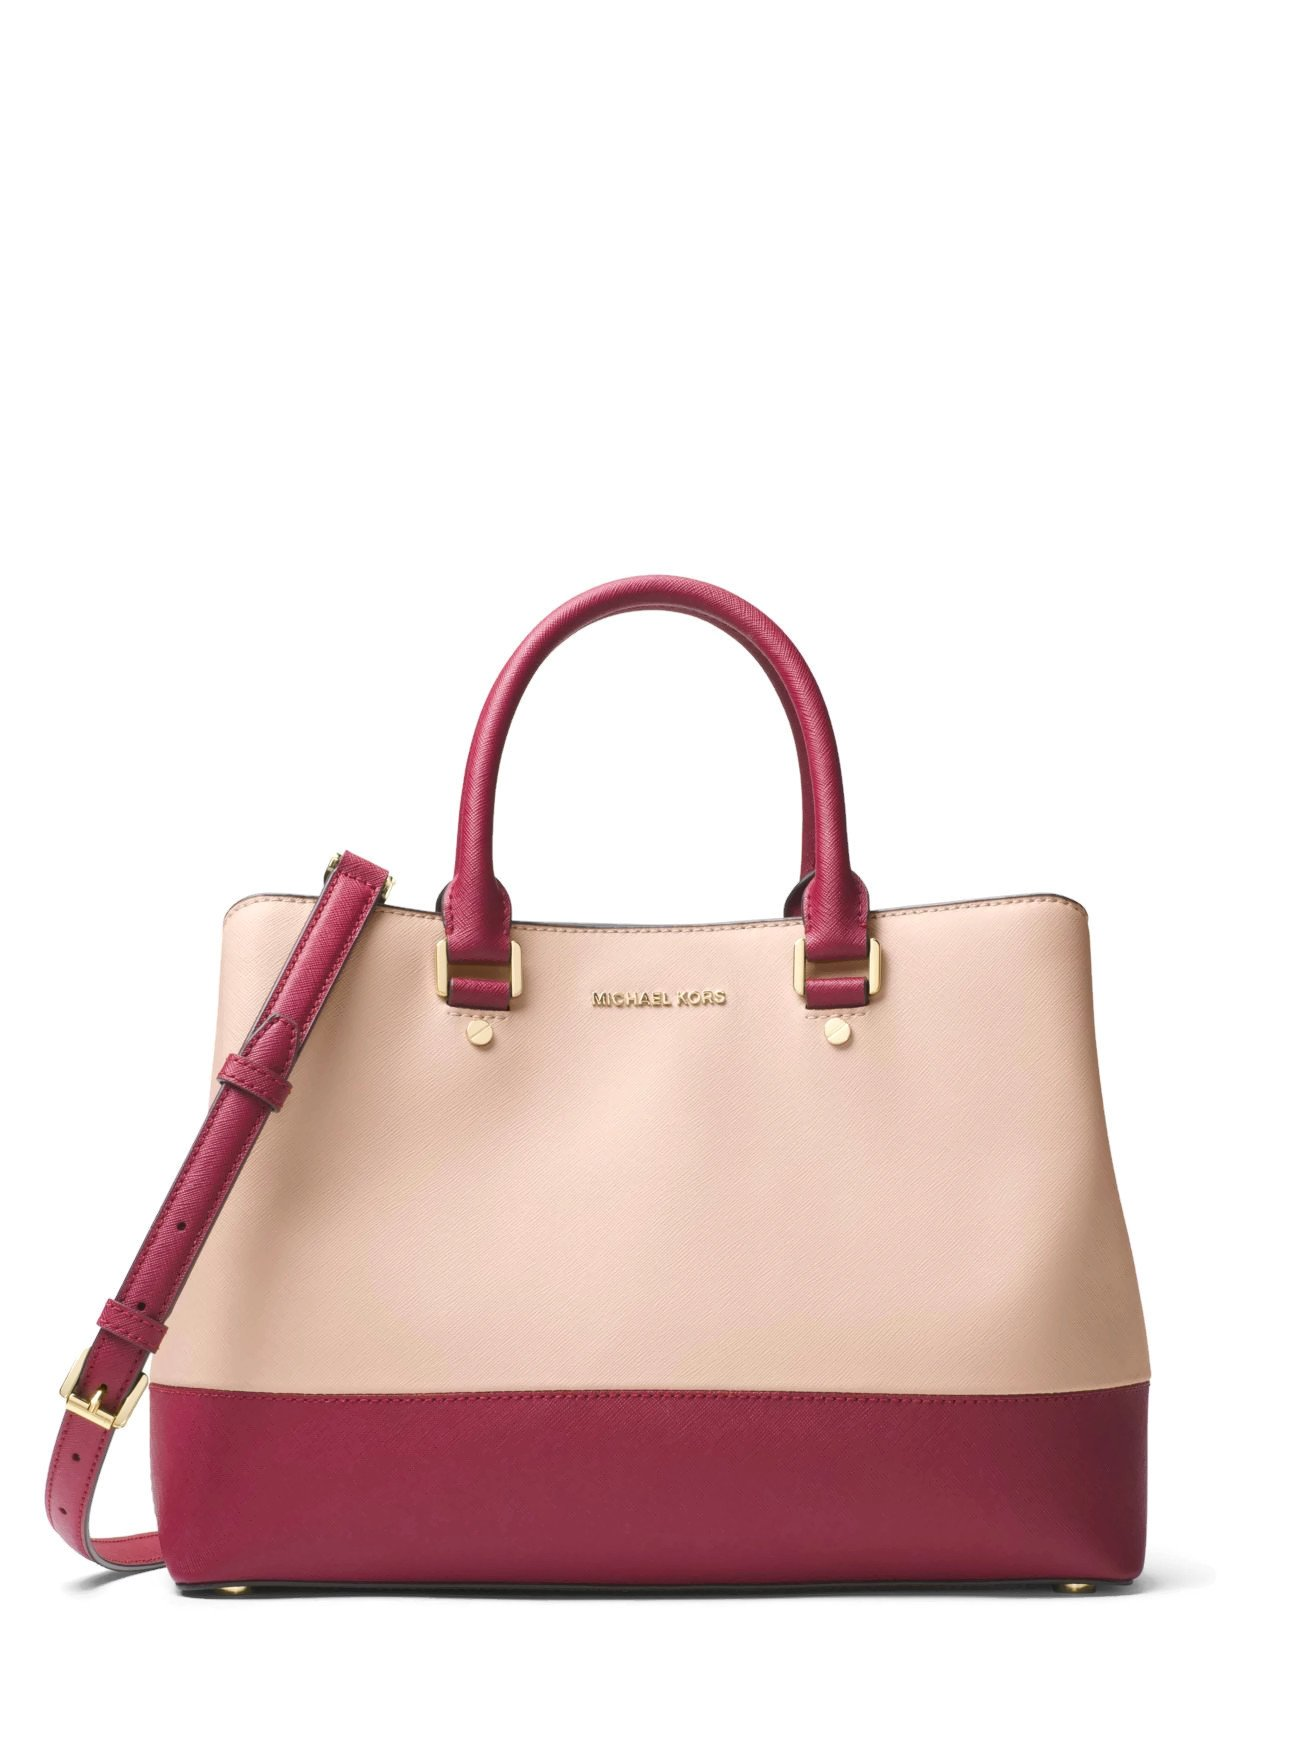 MICHAEL Michael Kors Savannah Large Satchel (Soft Pink/Mulberry) by Michael Kors